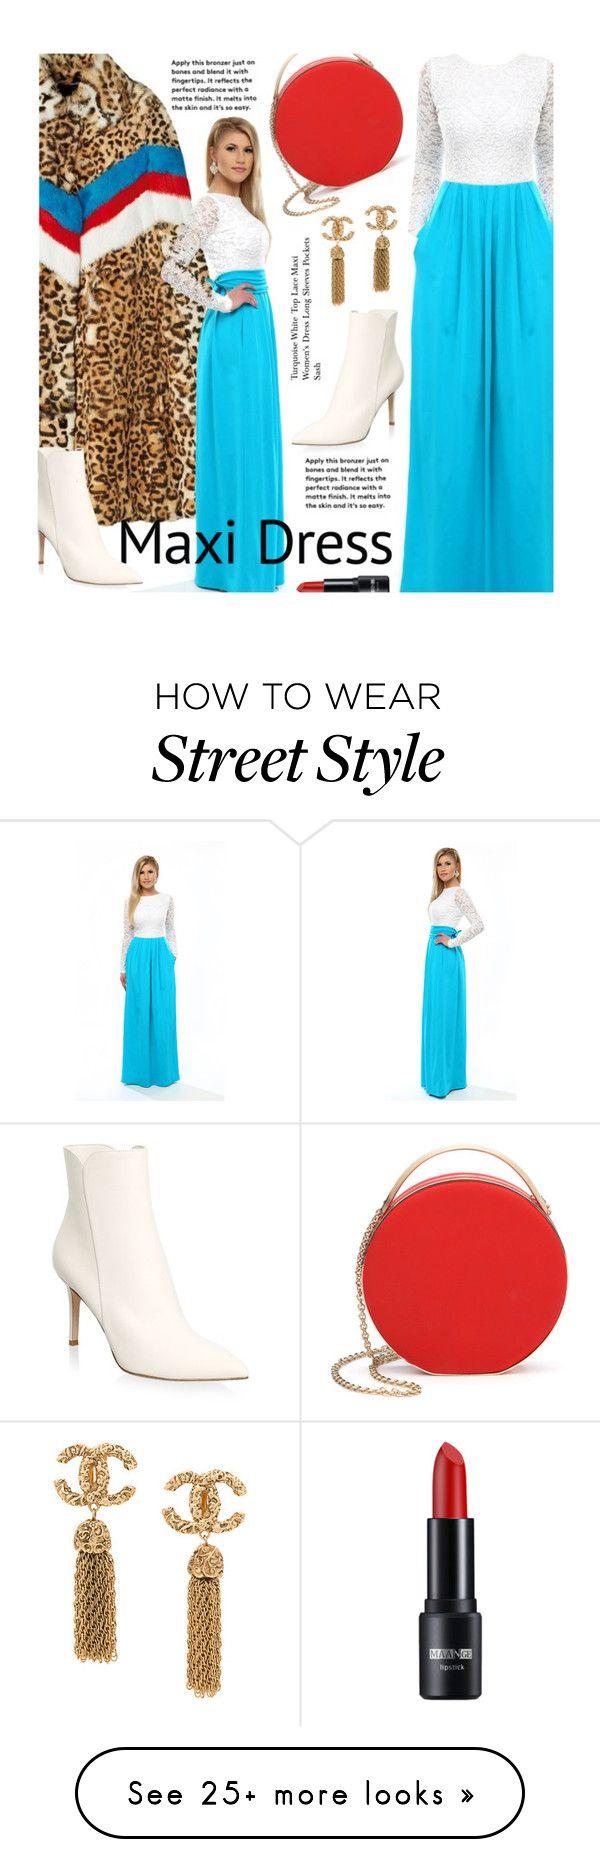 """Maxi Dress"" by beebeely-look on Polyvore featuring 3.1 Phillip Lim, Gianvito Rossi, StreetStyle, NYFW, maxidress, lacedress, DesirVale and plus size dresses"